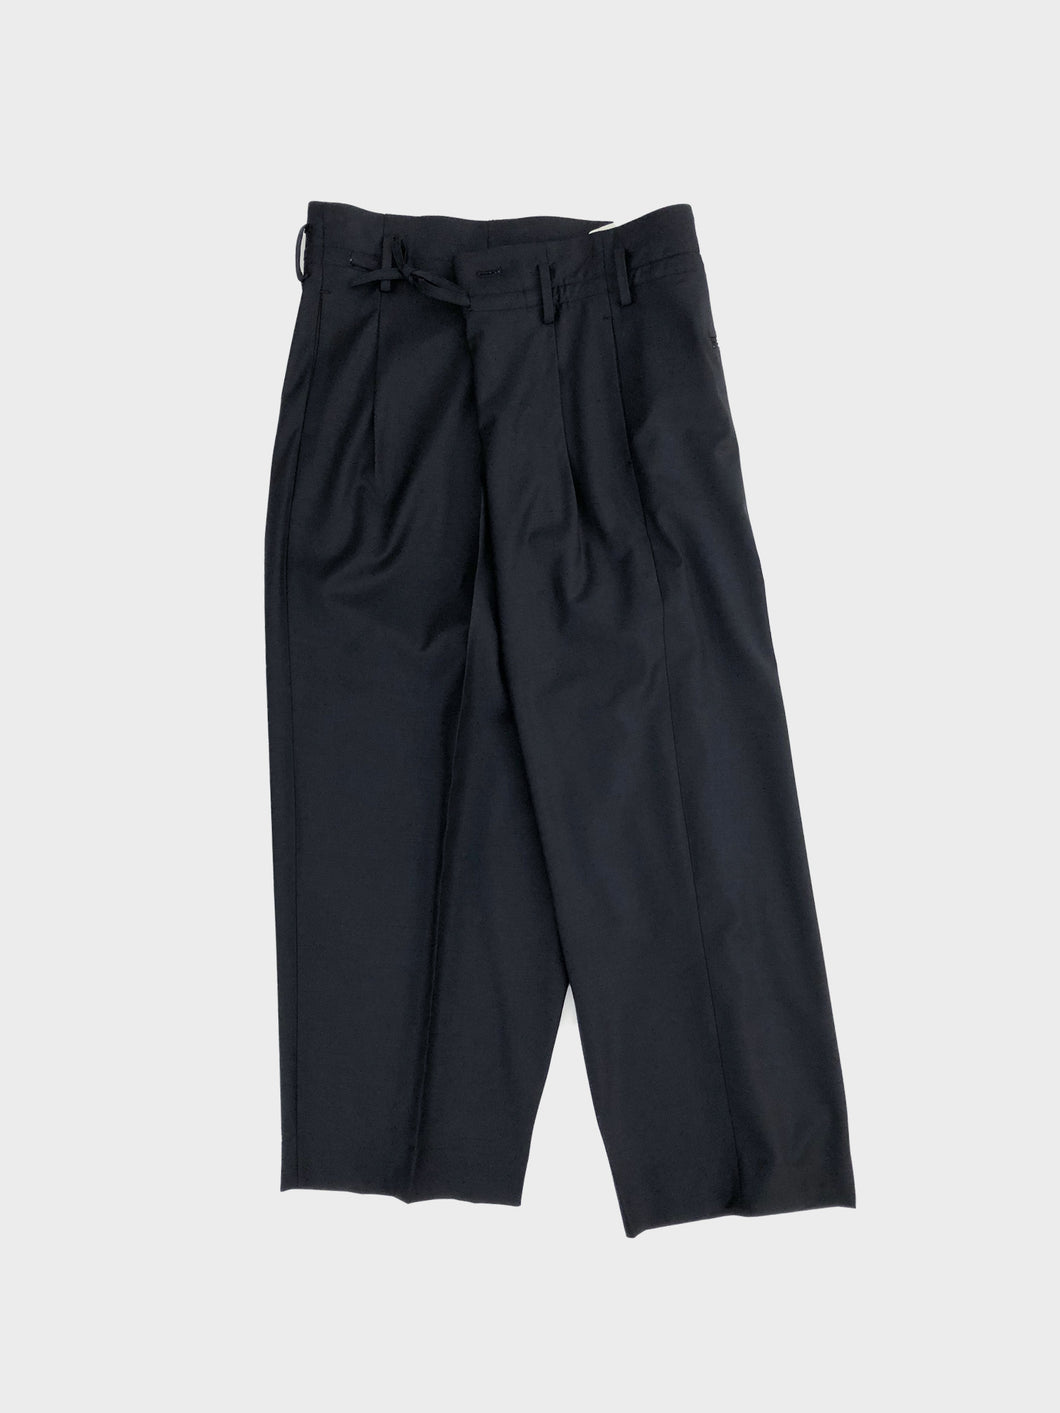 MAISON EUREKA / WRAP PANTS (BLACK)